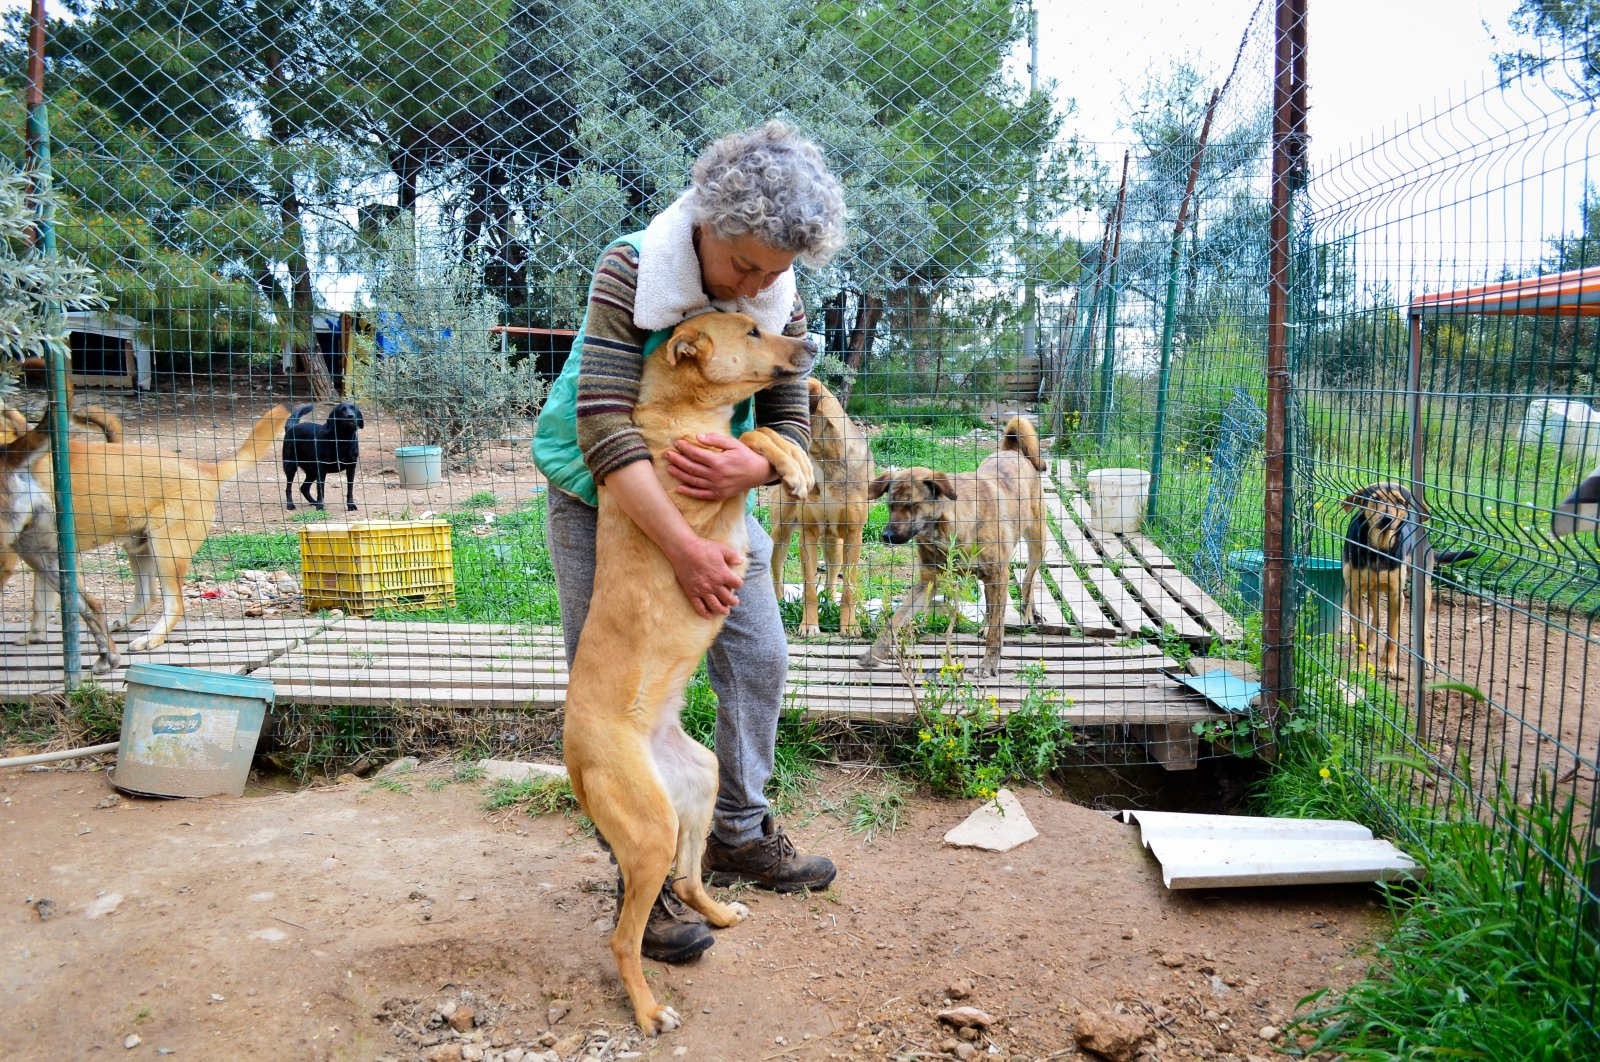 Mihriban Mammadova embraces a dog she cares for in her animal shelter, in Mersin, southern Turkey, Aug. 10, 2021. (AA PHOTO)